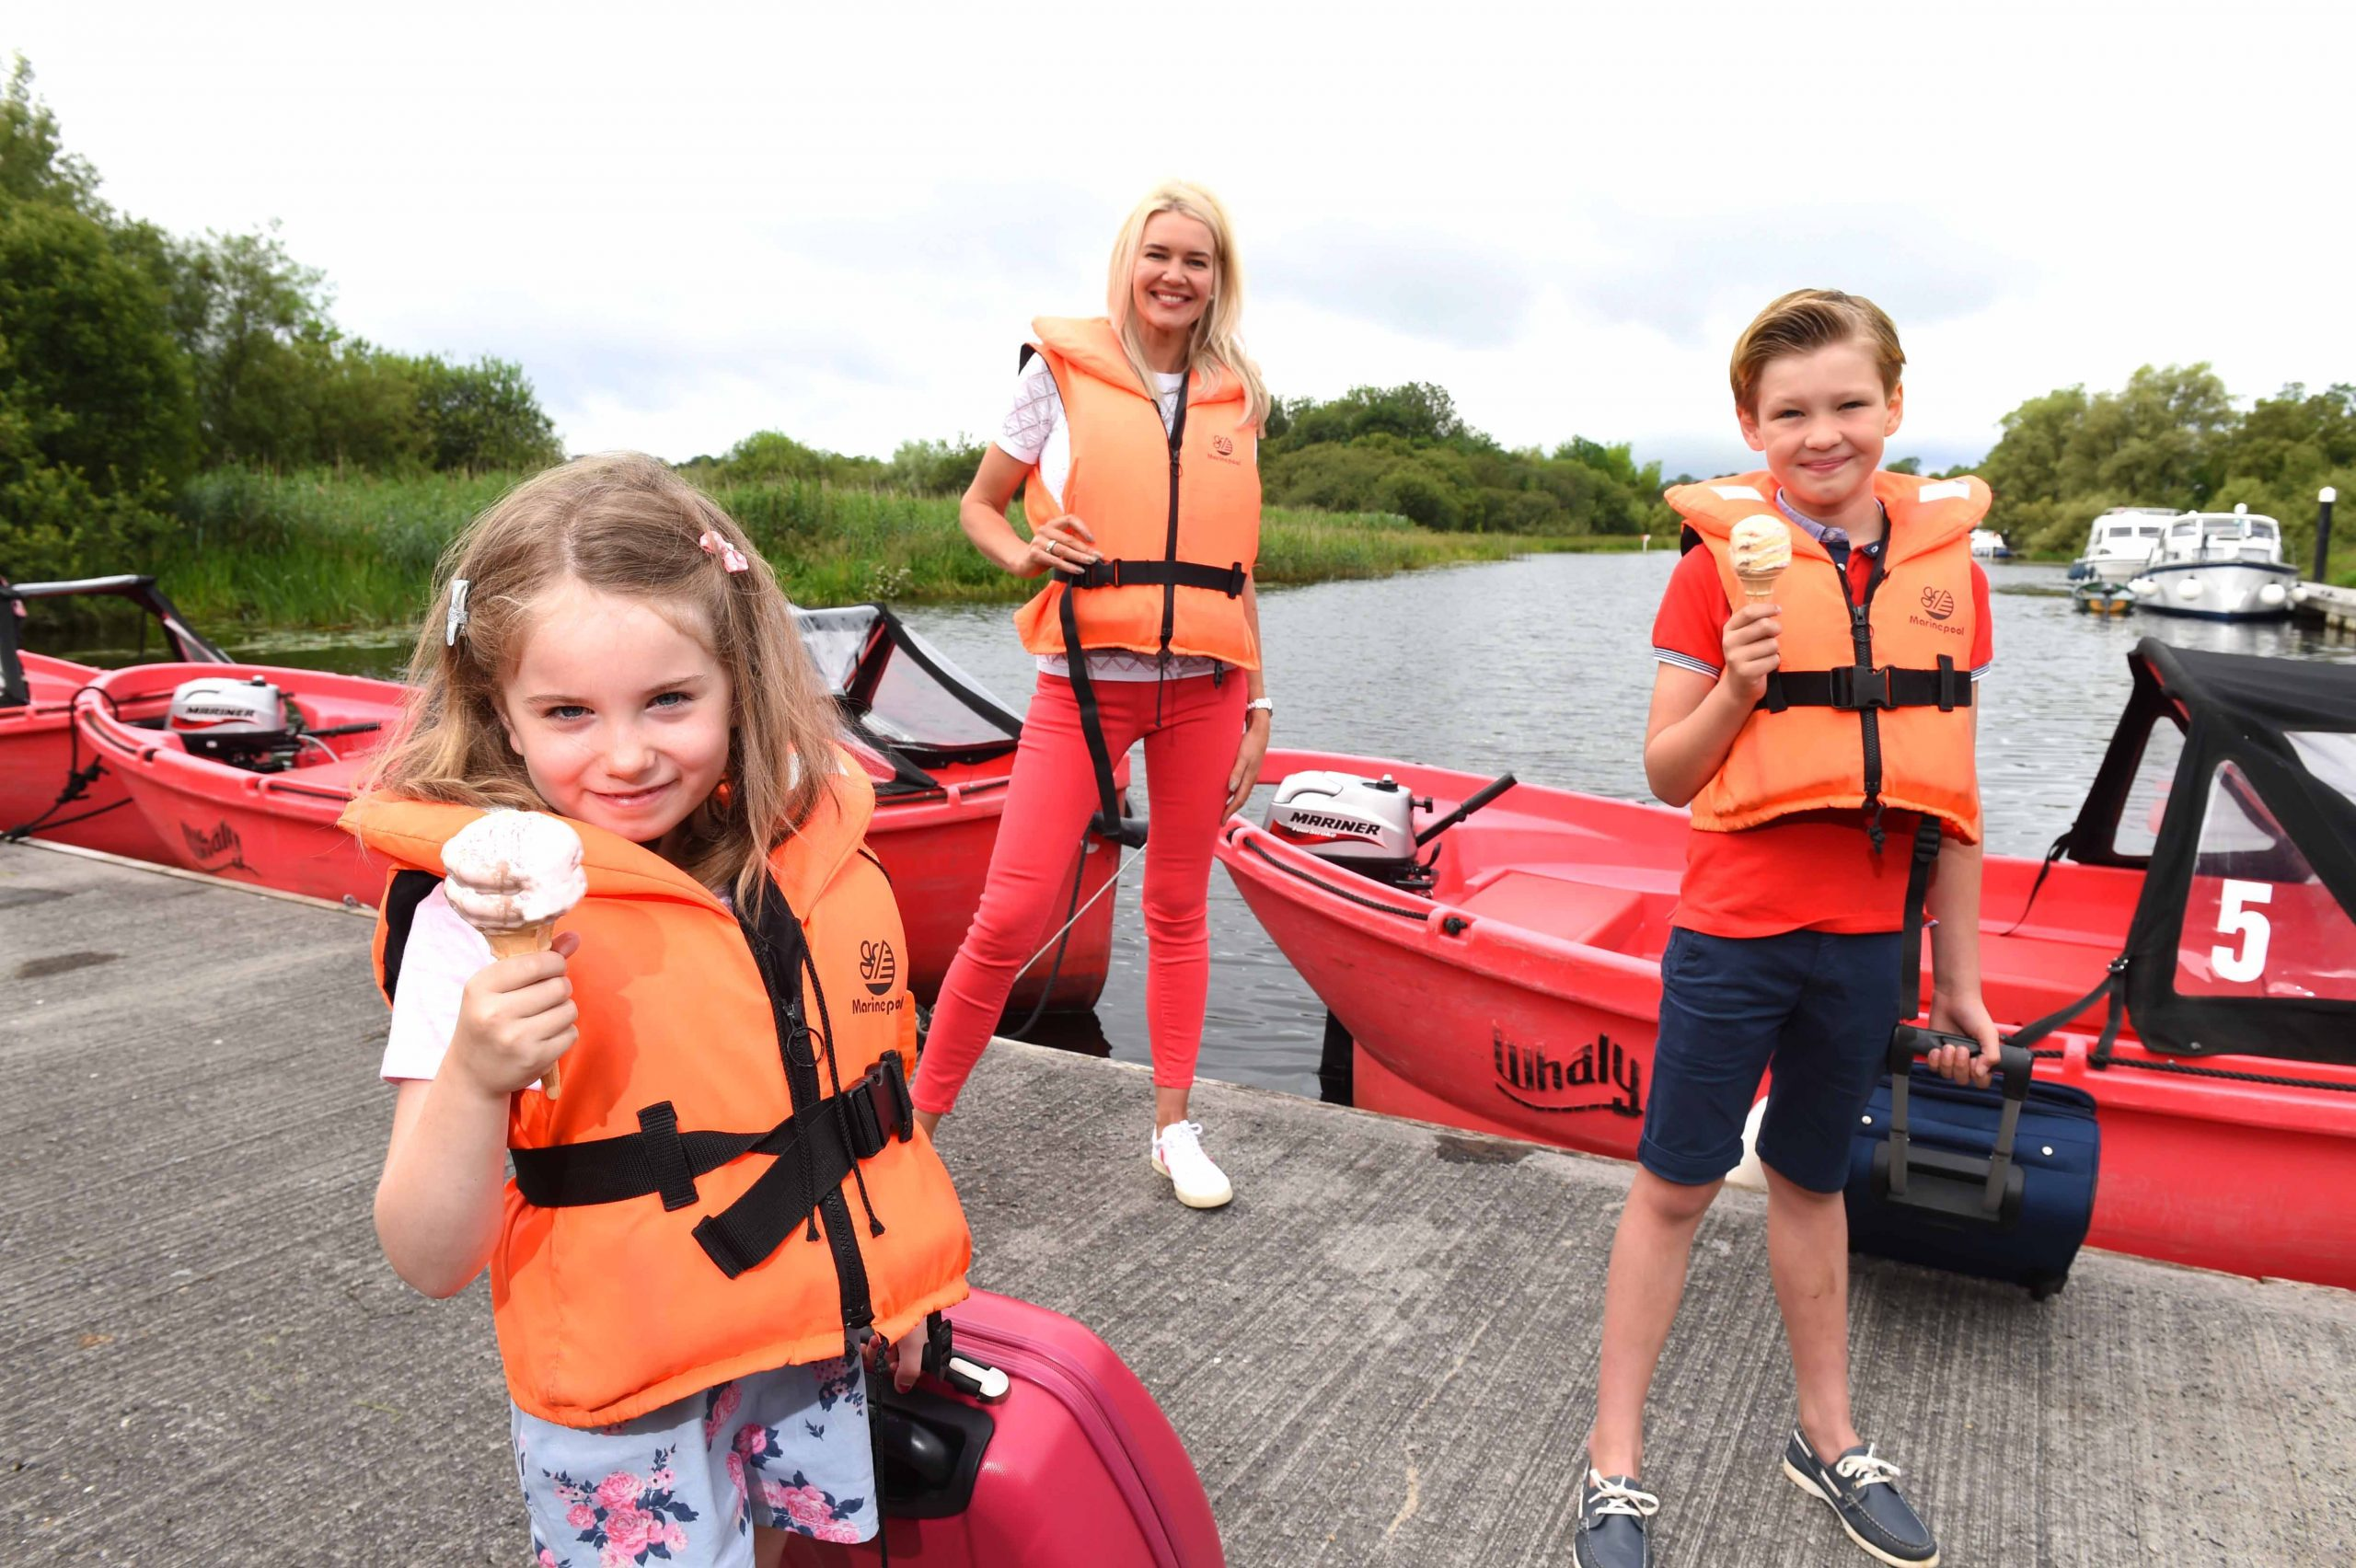 FERMANAGH FUN: As Covid-19 restrictions ease, more and more people are looking forward to a much-needed break and Fermanagh Lakeland Tourism has reported a significant increase in staycation enquiries in the county over the last four weeks. It's new marketing initiative Ready For You aims to encourage holiday makers to book a staycation and enjoy everything that the Lakeland County has to offer. Visit www.fermanaghlakelands.com to plan your staycation today! Pictured as they get ready for a fun filled break in Co. Fermanagh are (L-R) Eabha Smyth, Judith Grey and Wilson Grey.